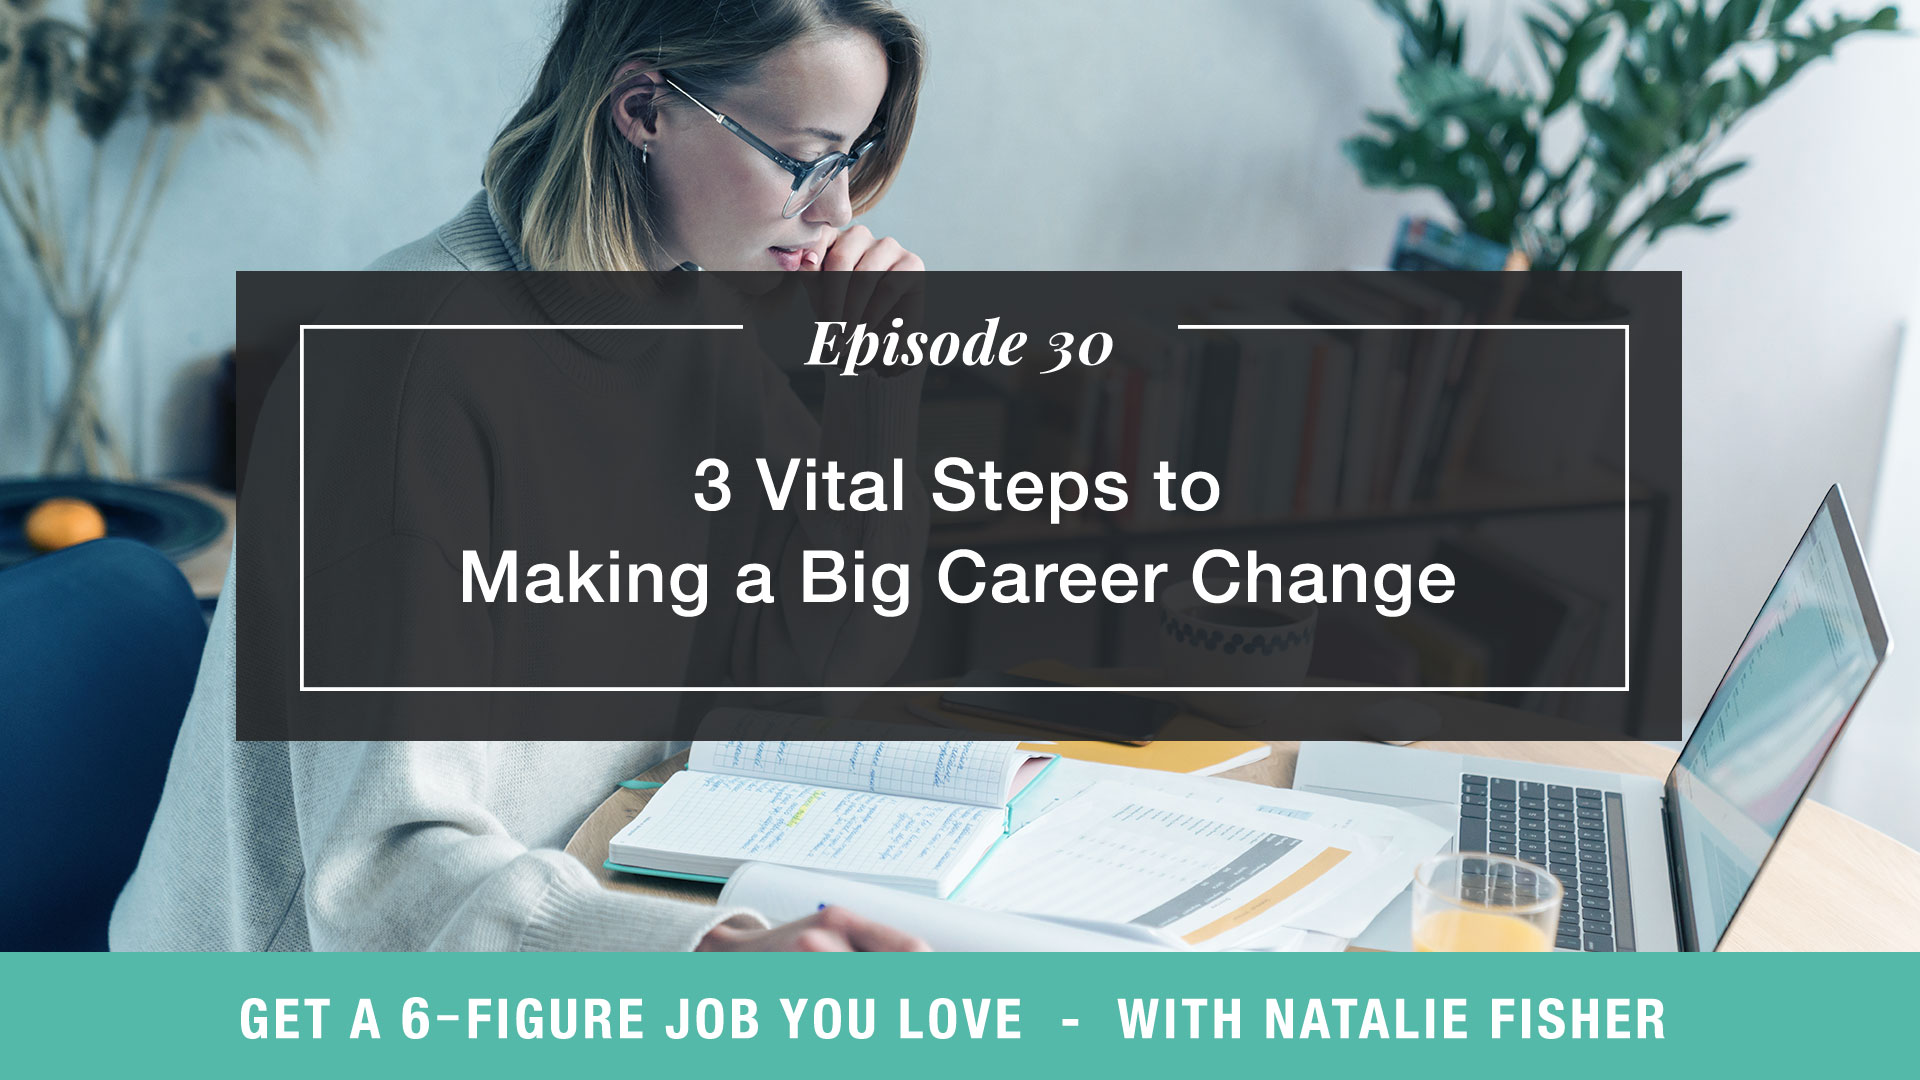 3 Vital Steps to Making a Big Career Change